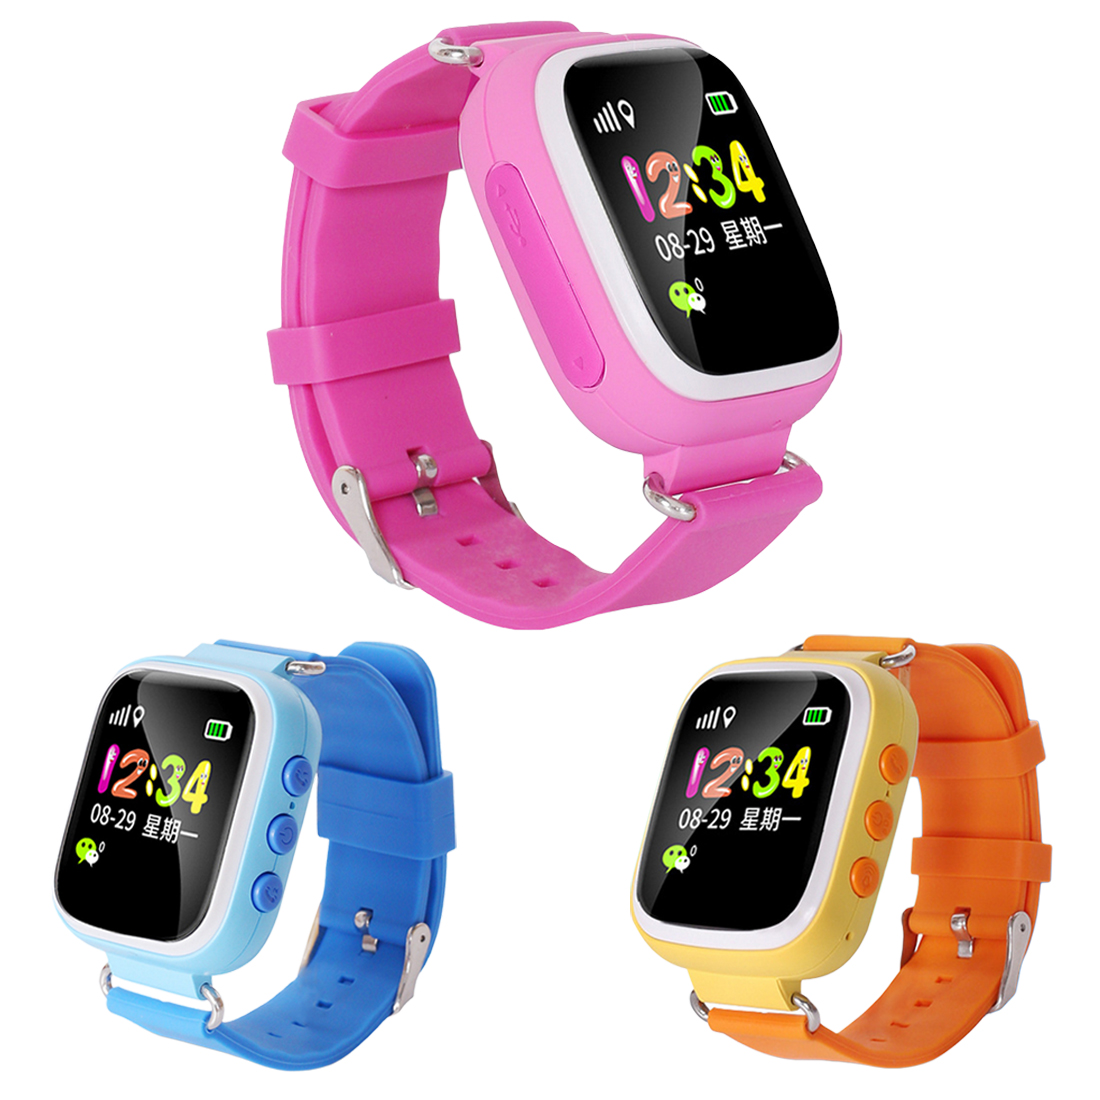 Hot Q20 GPS Kids Watches Baby Smart Watch for Children SOS Call Location Finder Locator Tracker Anti Lost Monitor Smartwatch 1pcs 2017 new gps tracking watch for kids q610s baby watch lbs gps locator tracker anti lost monitor sos call smartwatch child page 6